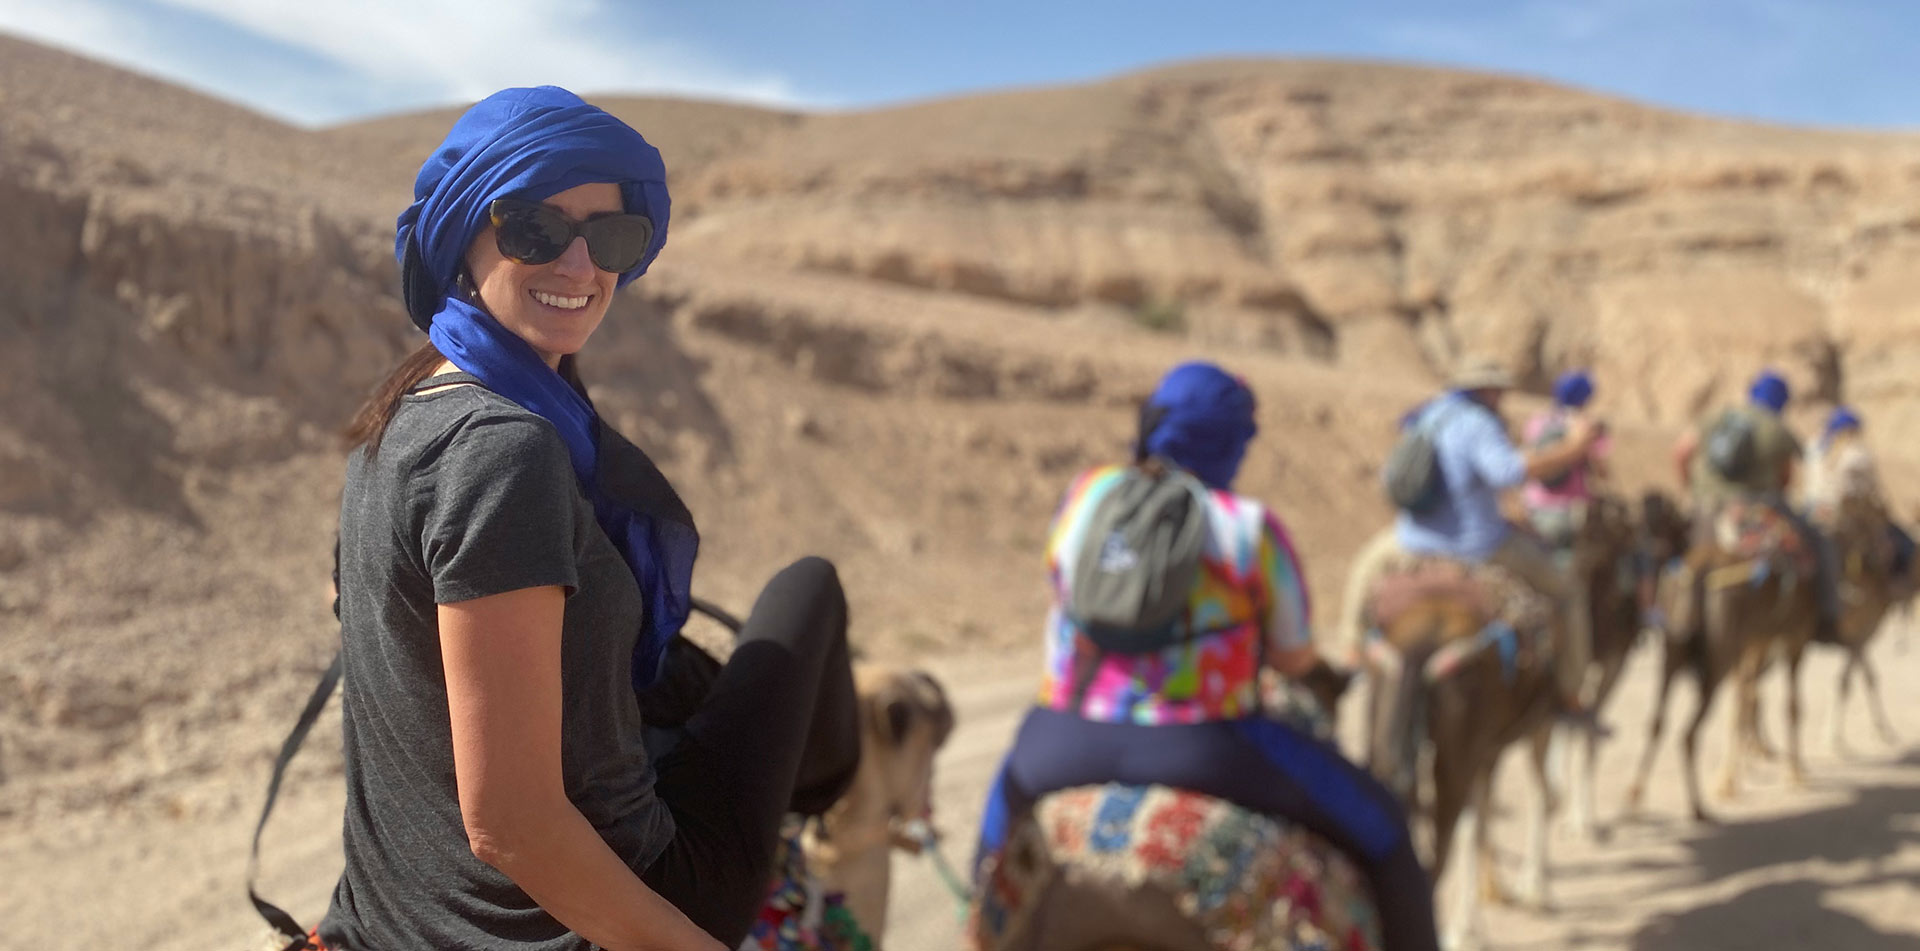 Africa Morocco Agafay Desert woman in head scarf smiling riding camel caravan - luxury vacation destinations